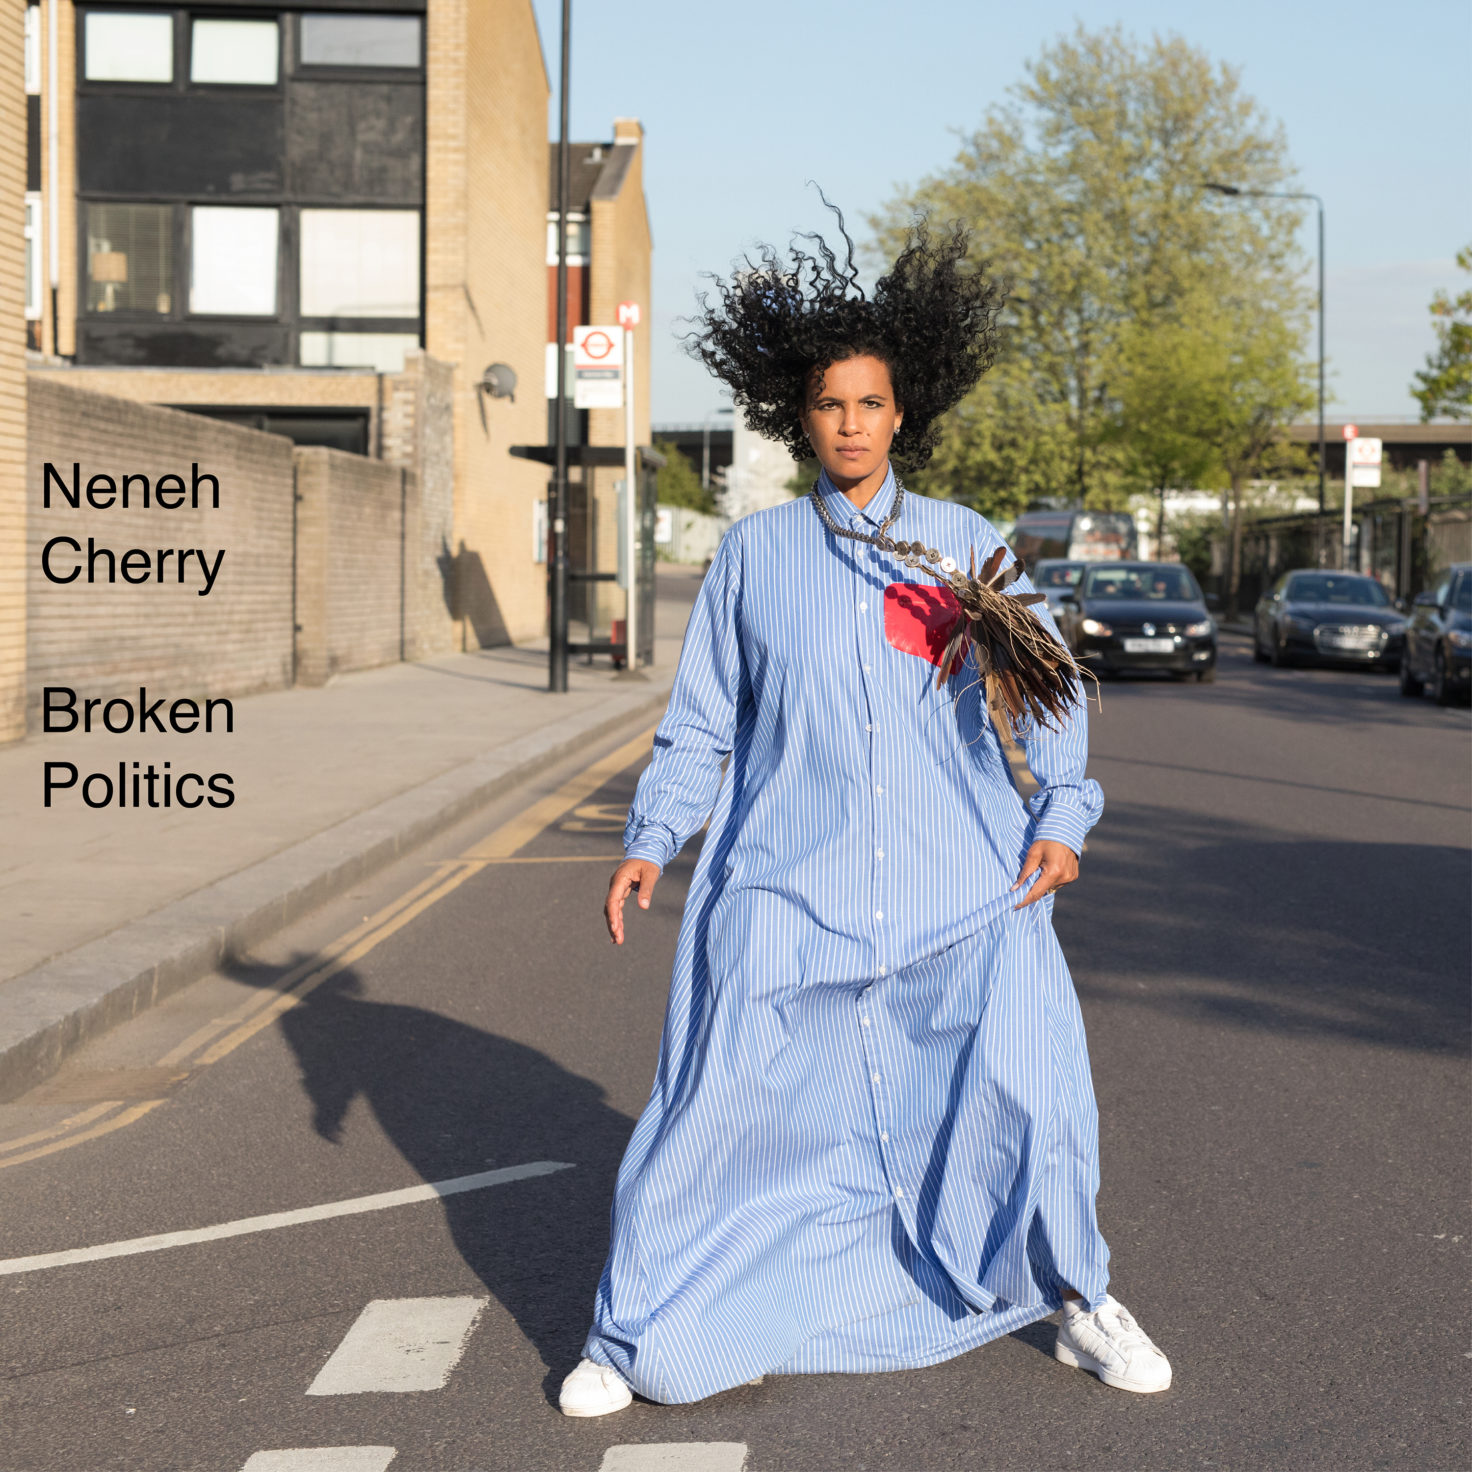 Neneh_Cherry_Broken_Politics_Final_3000x3000px1-1472x1472.jpg